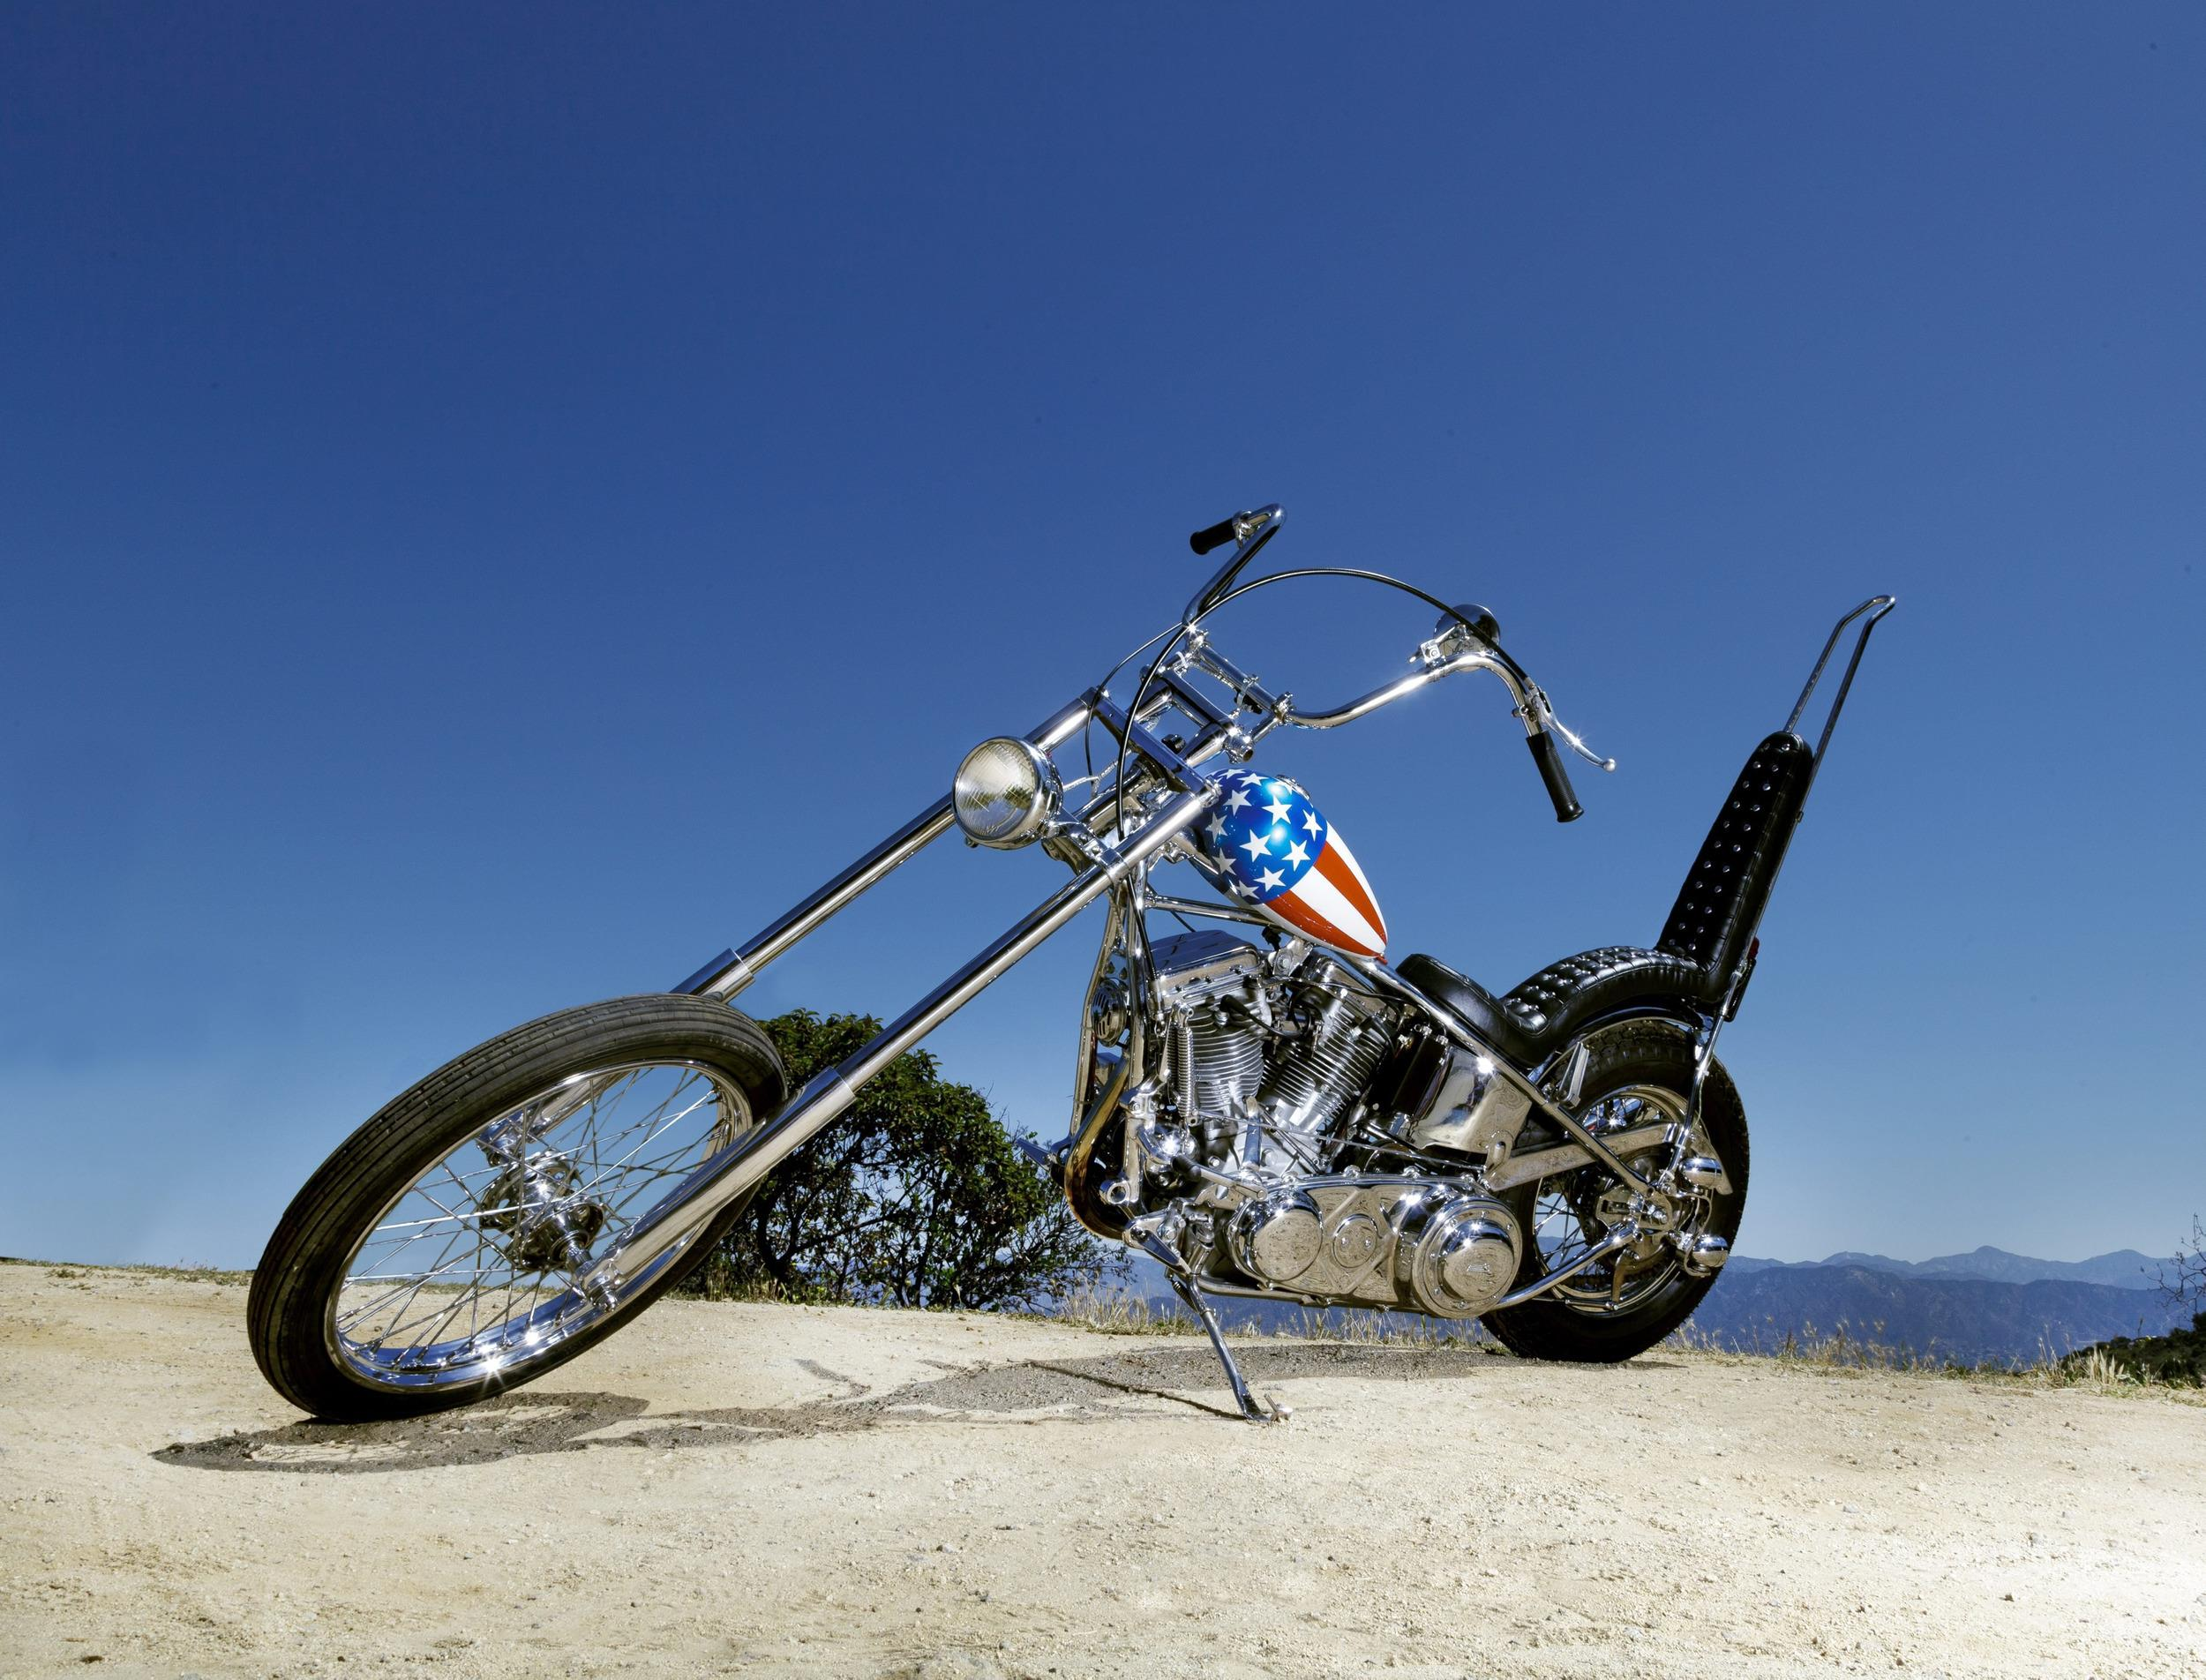 39 easy rider 39 chopper sells for almost 1 4 million nbc news. Black Bedroom Furniture Sets. Home Design Ideas